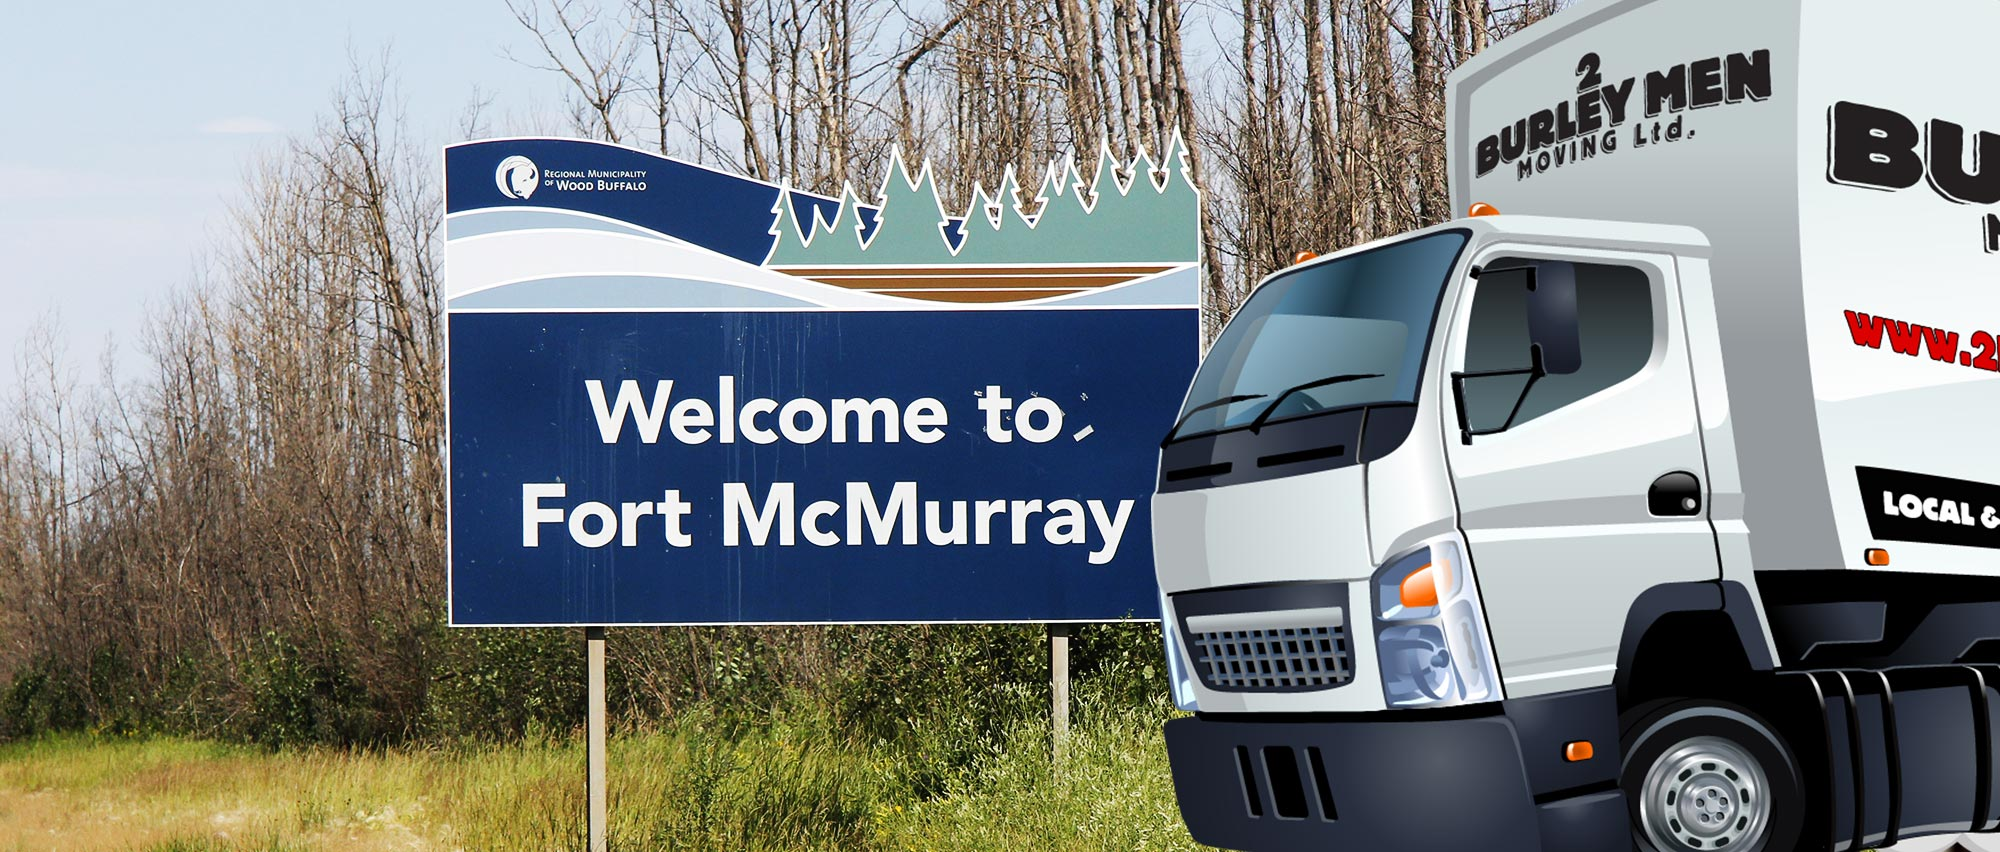 fort mcmurray mover